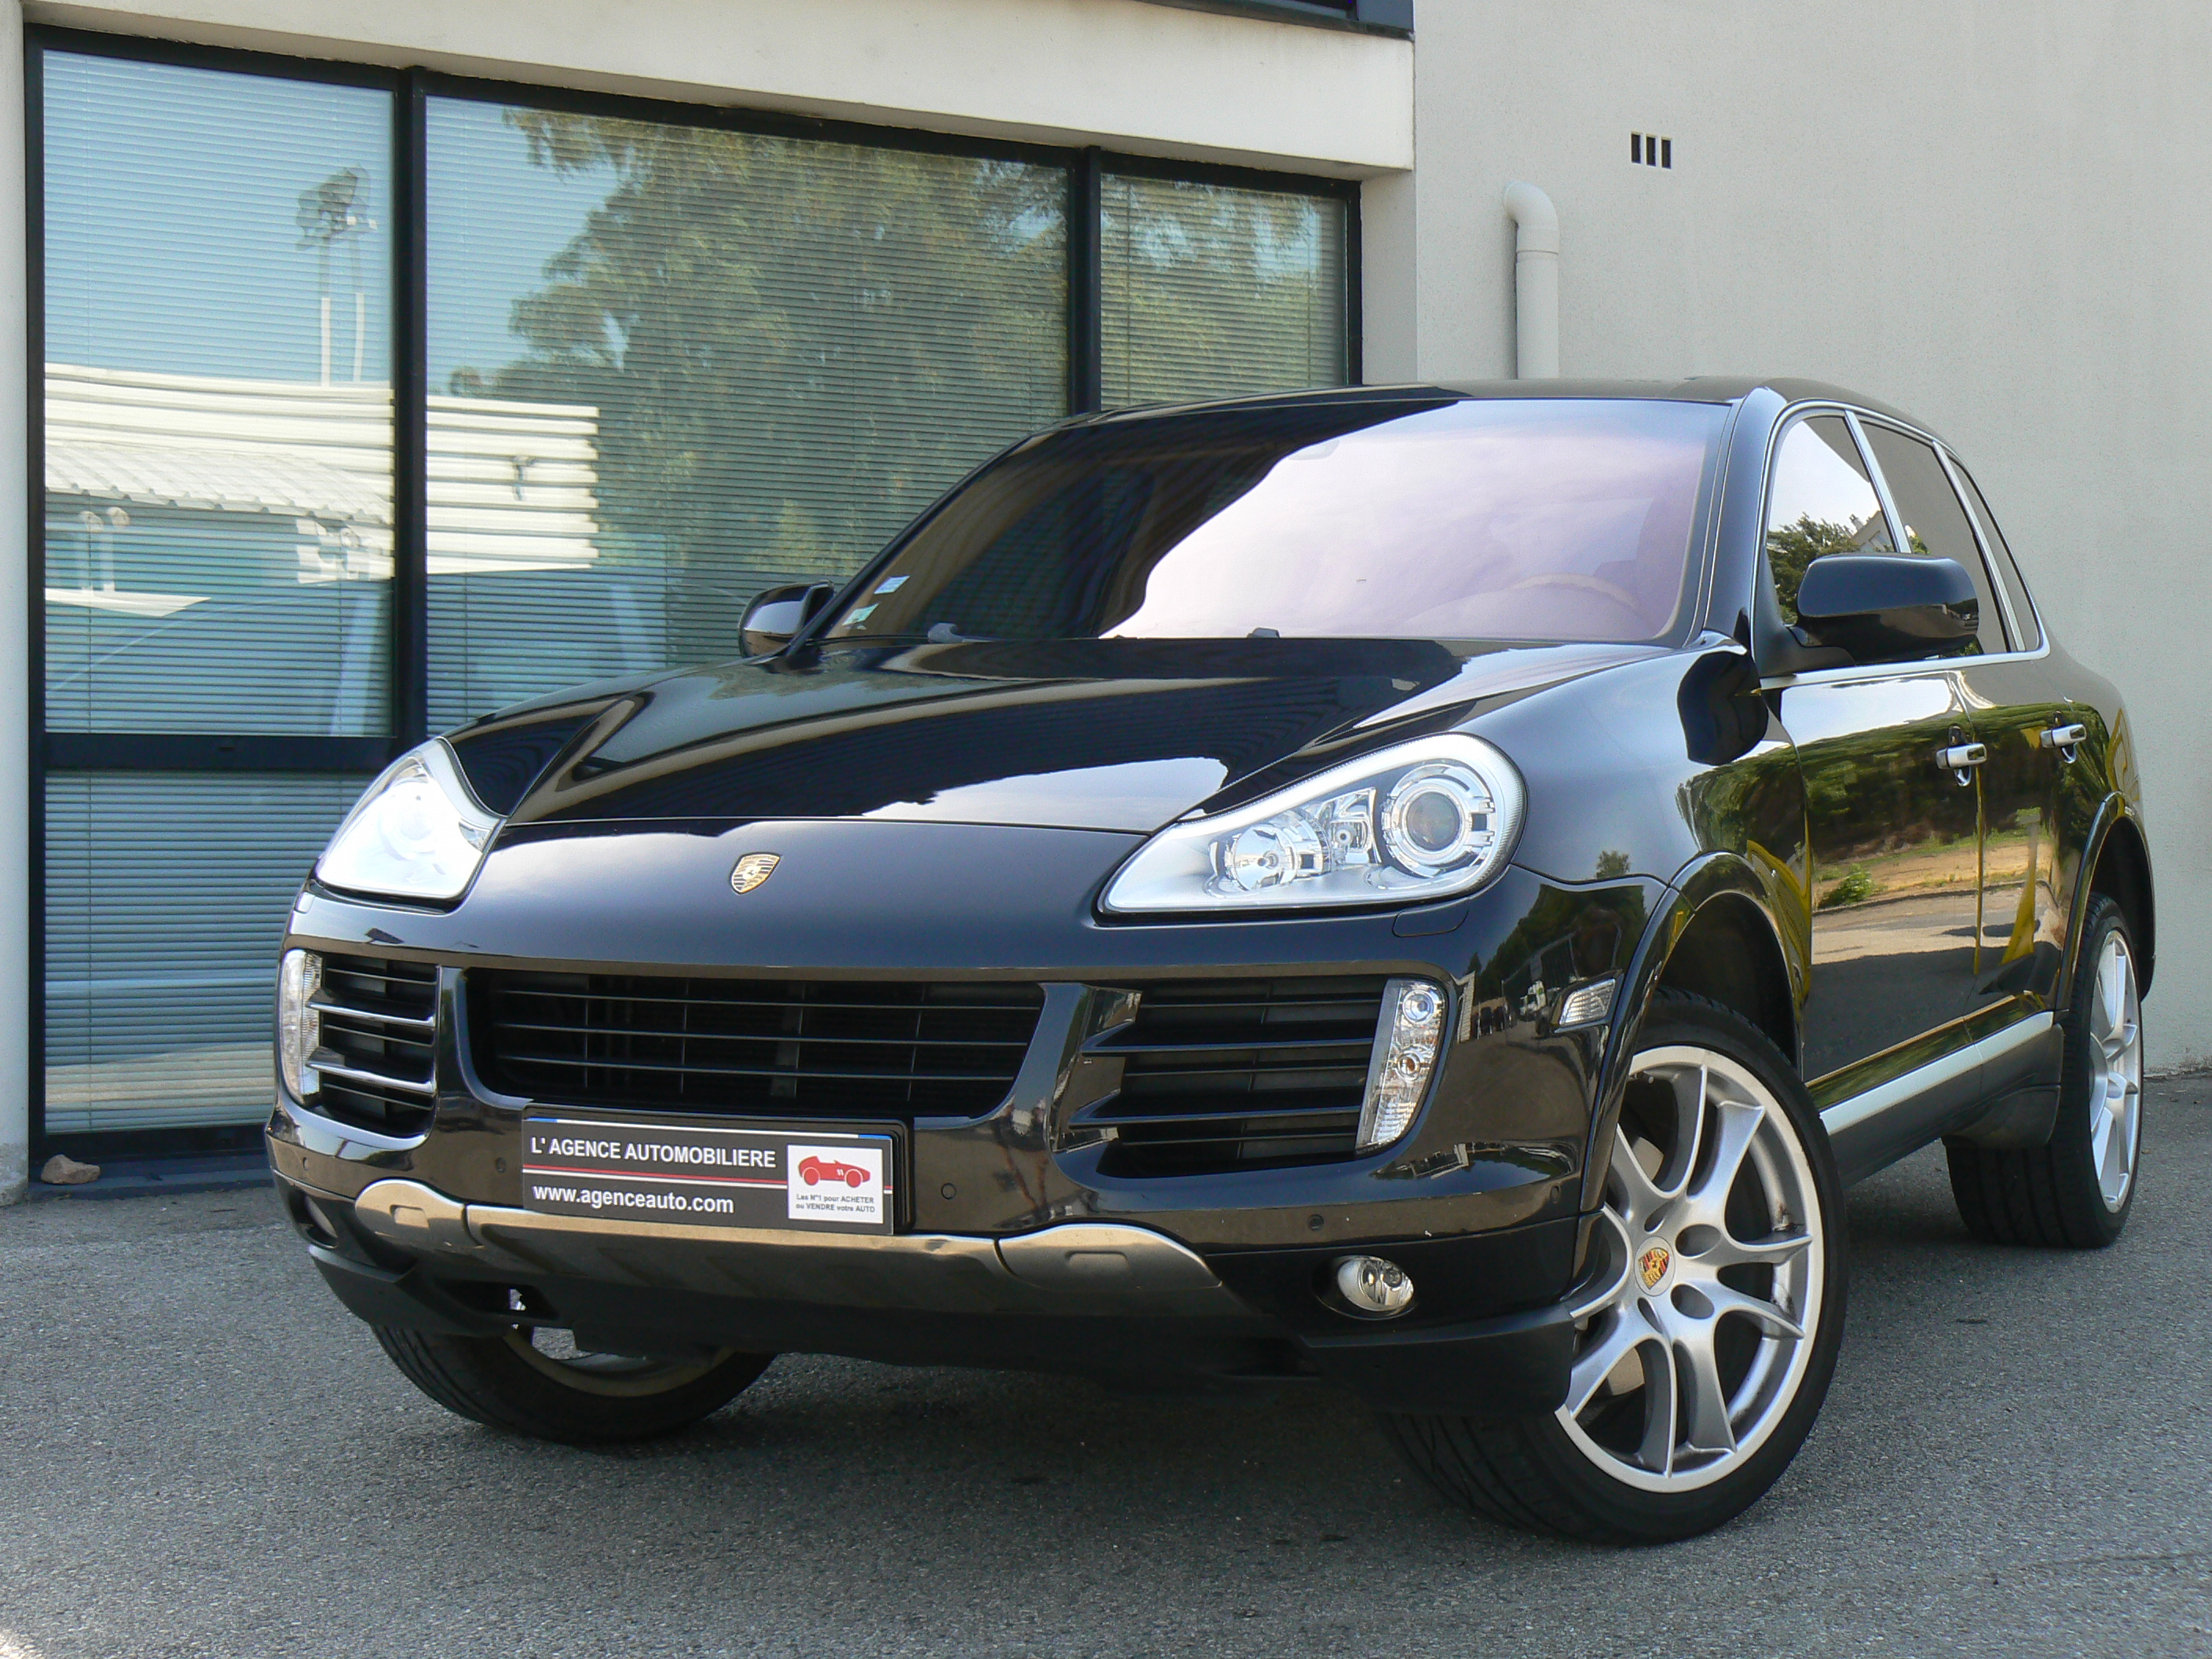 porsche cayenne 4 8 v8 385 s tiptronic s occasion bourg en bresse pas cher voiture occasion ain. Black Bedroom Furniture Sets. Home Design Ideas